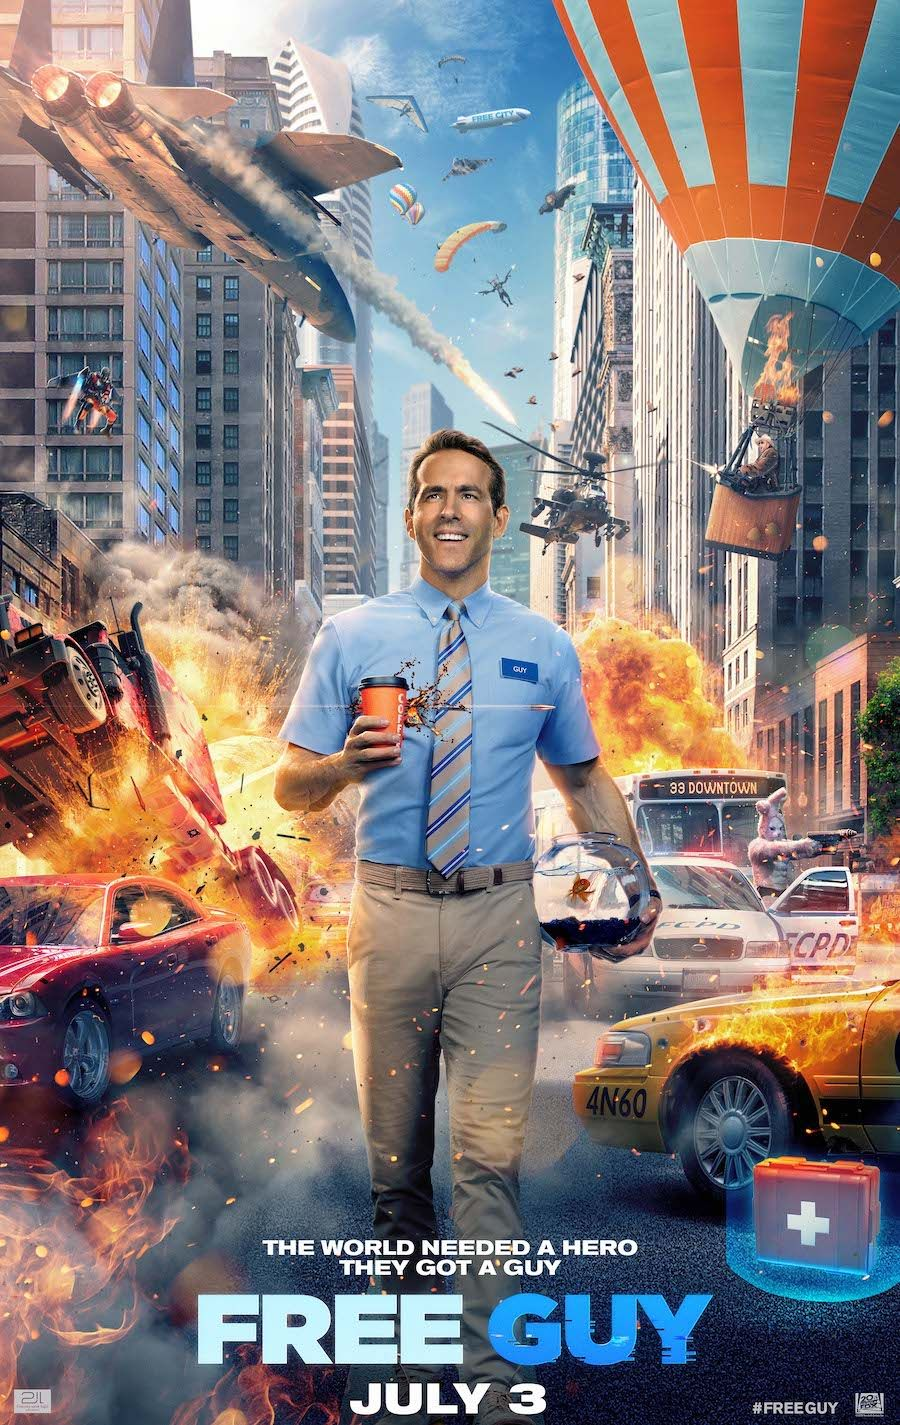 Ryan Reynolds stars in Adventure Comedy 'Free Guy' Ryan